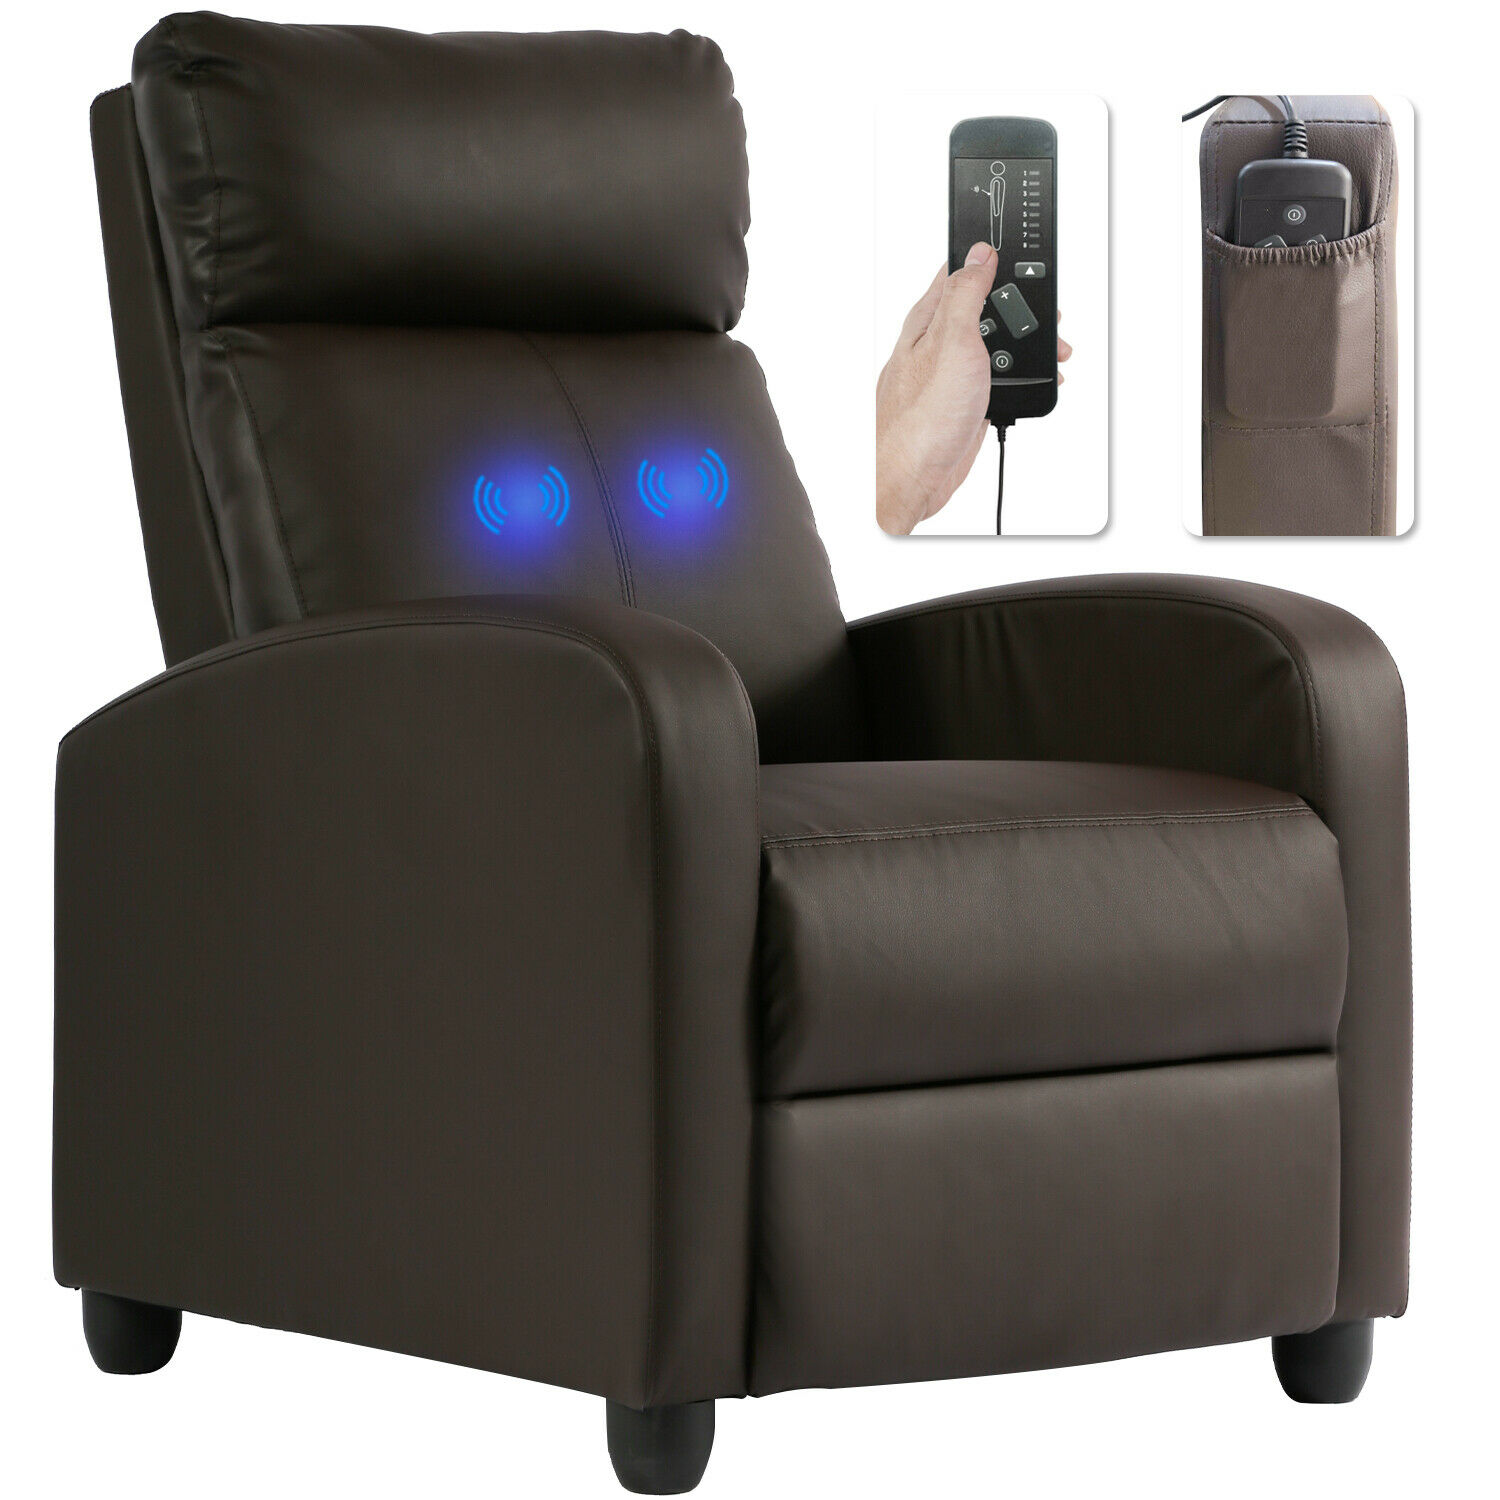 Recliner Chair for Living Room Massage Recliner Sofa Single Sofa Home  Theater Seating Reading Chair Winback Modern Reclining Chair Easy Lounge  with PU ...